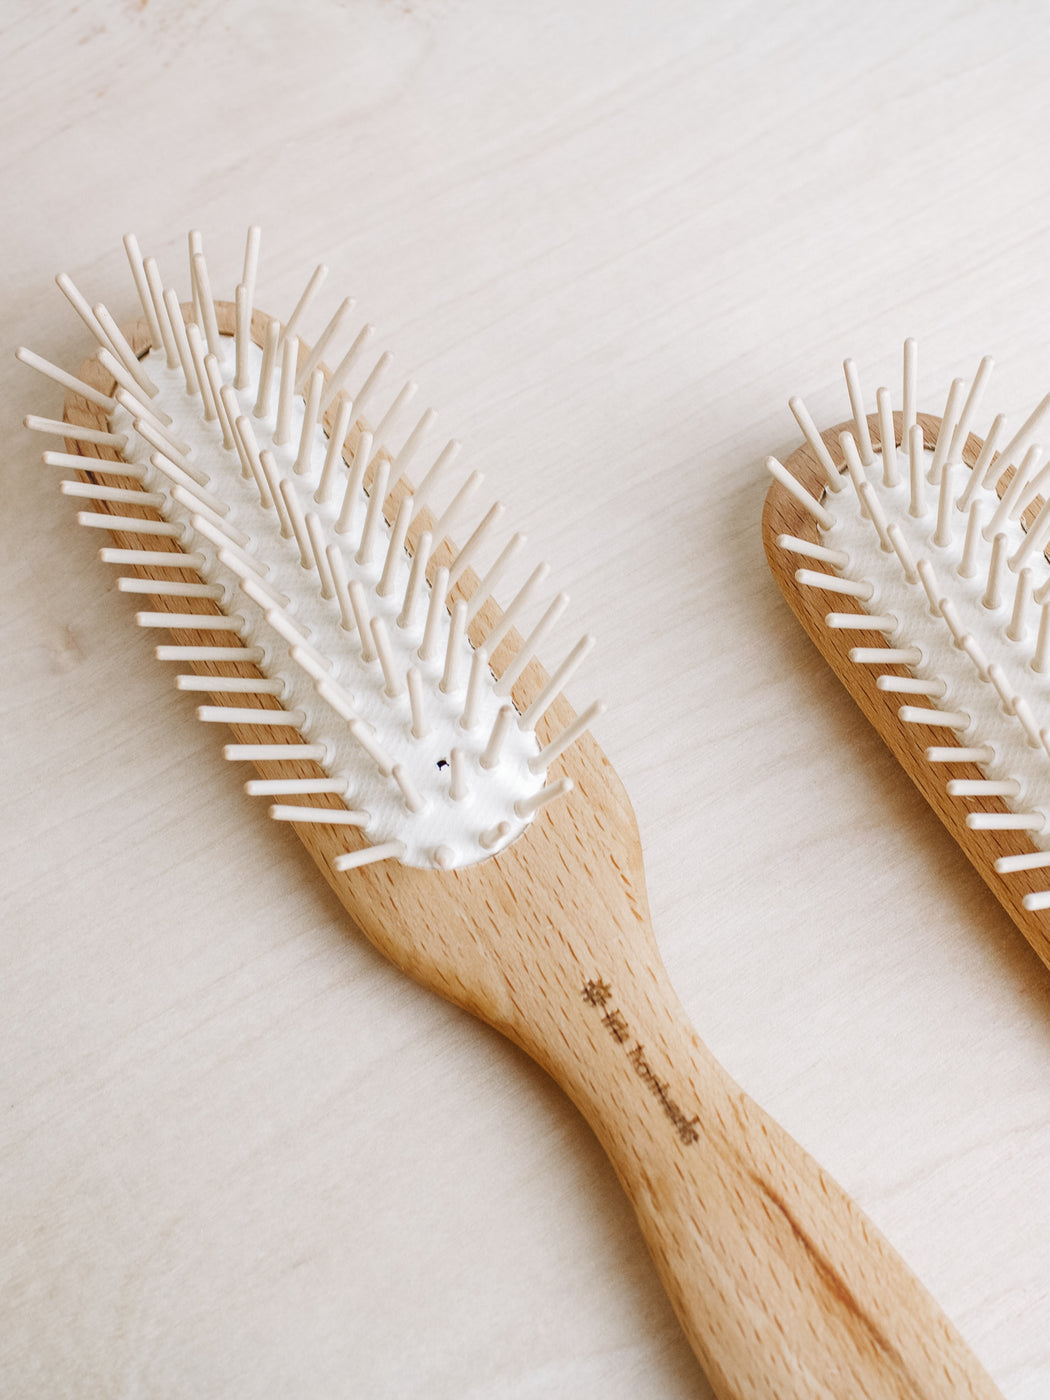 Iris Hantverk- Hair Brush w/Wood Bristles